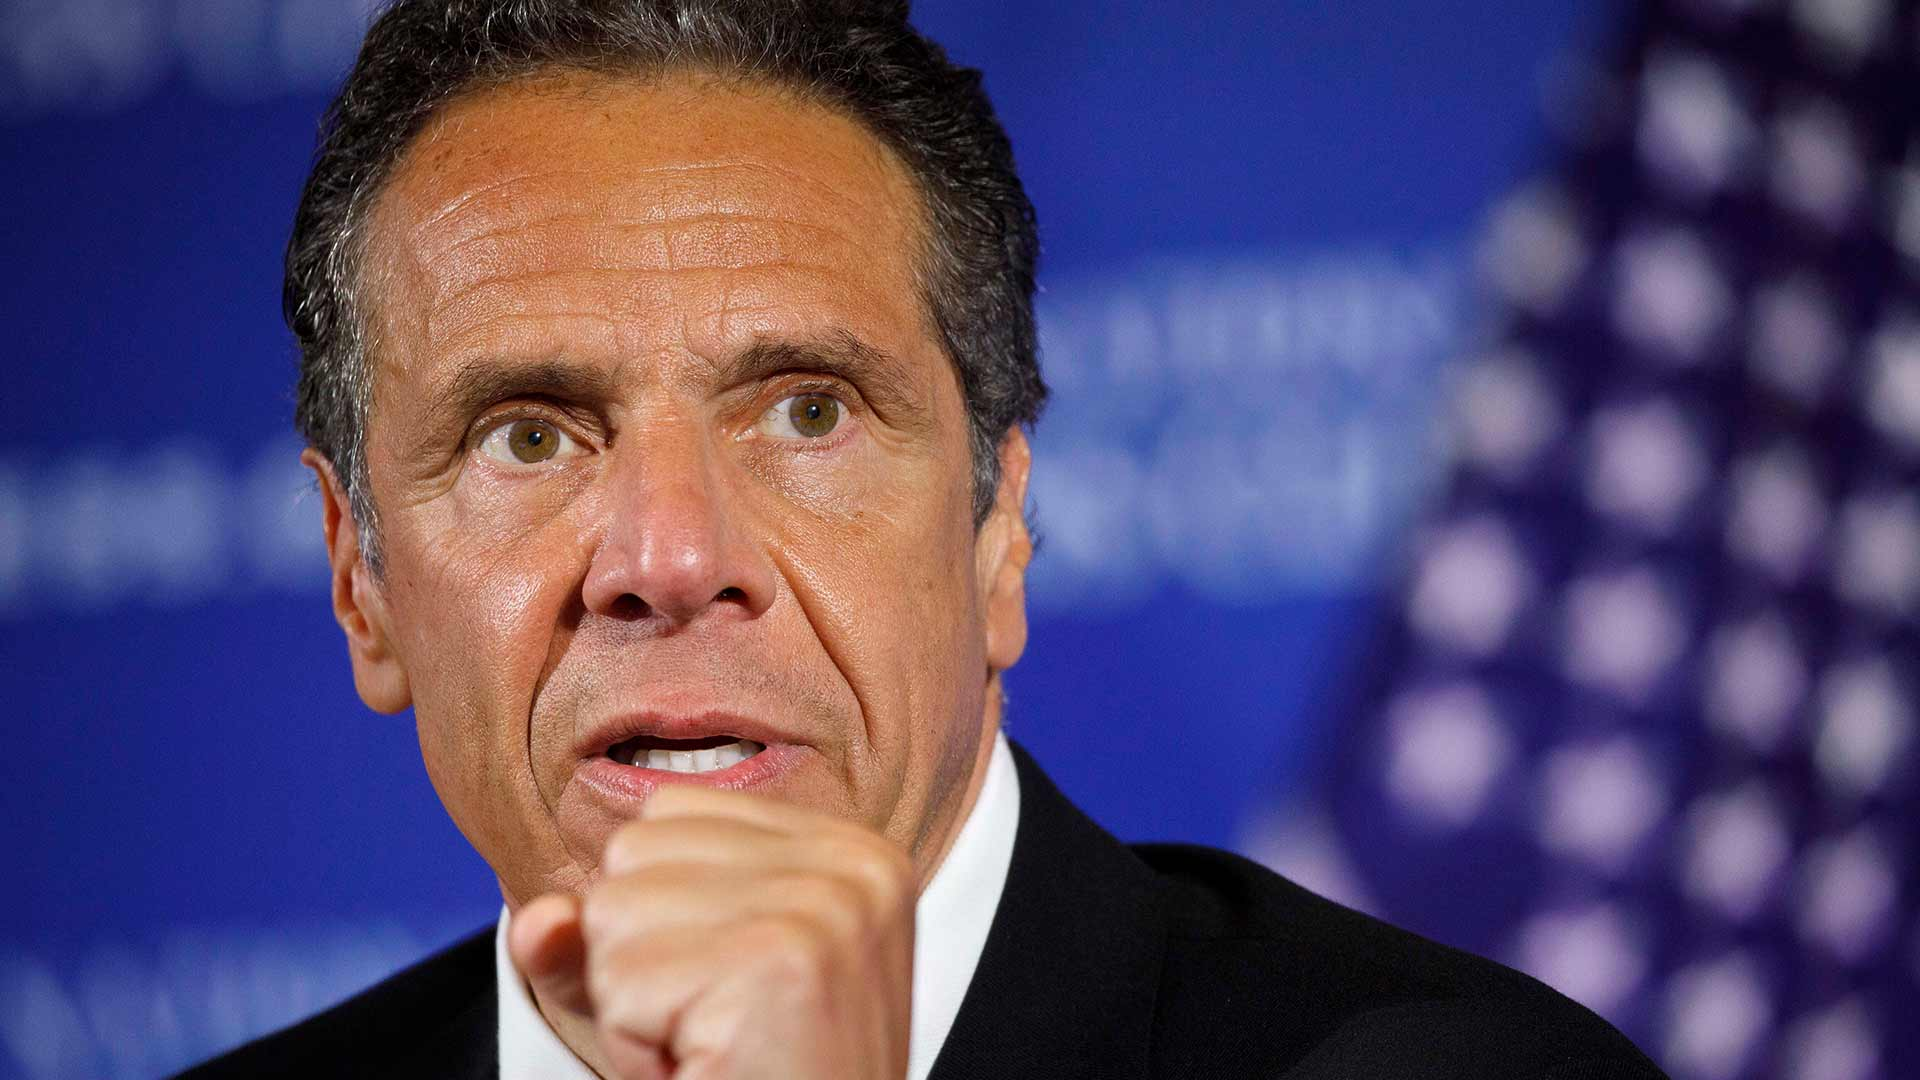 NY Gov. Cuomo responds to sexual harassment accusations from 2nd former aide